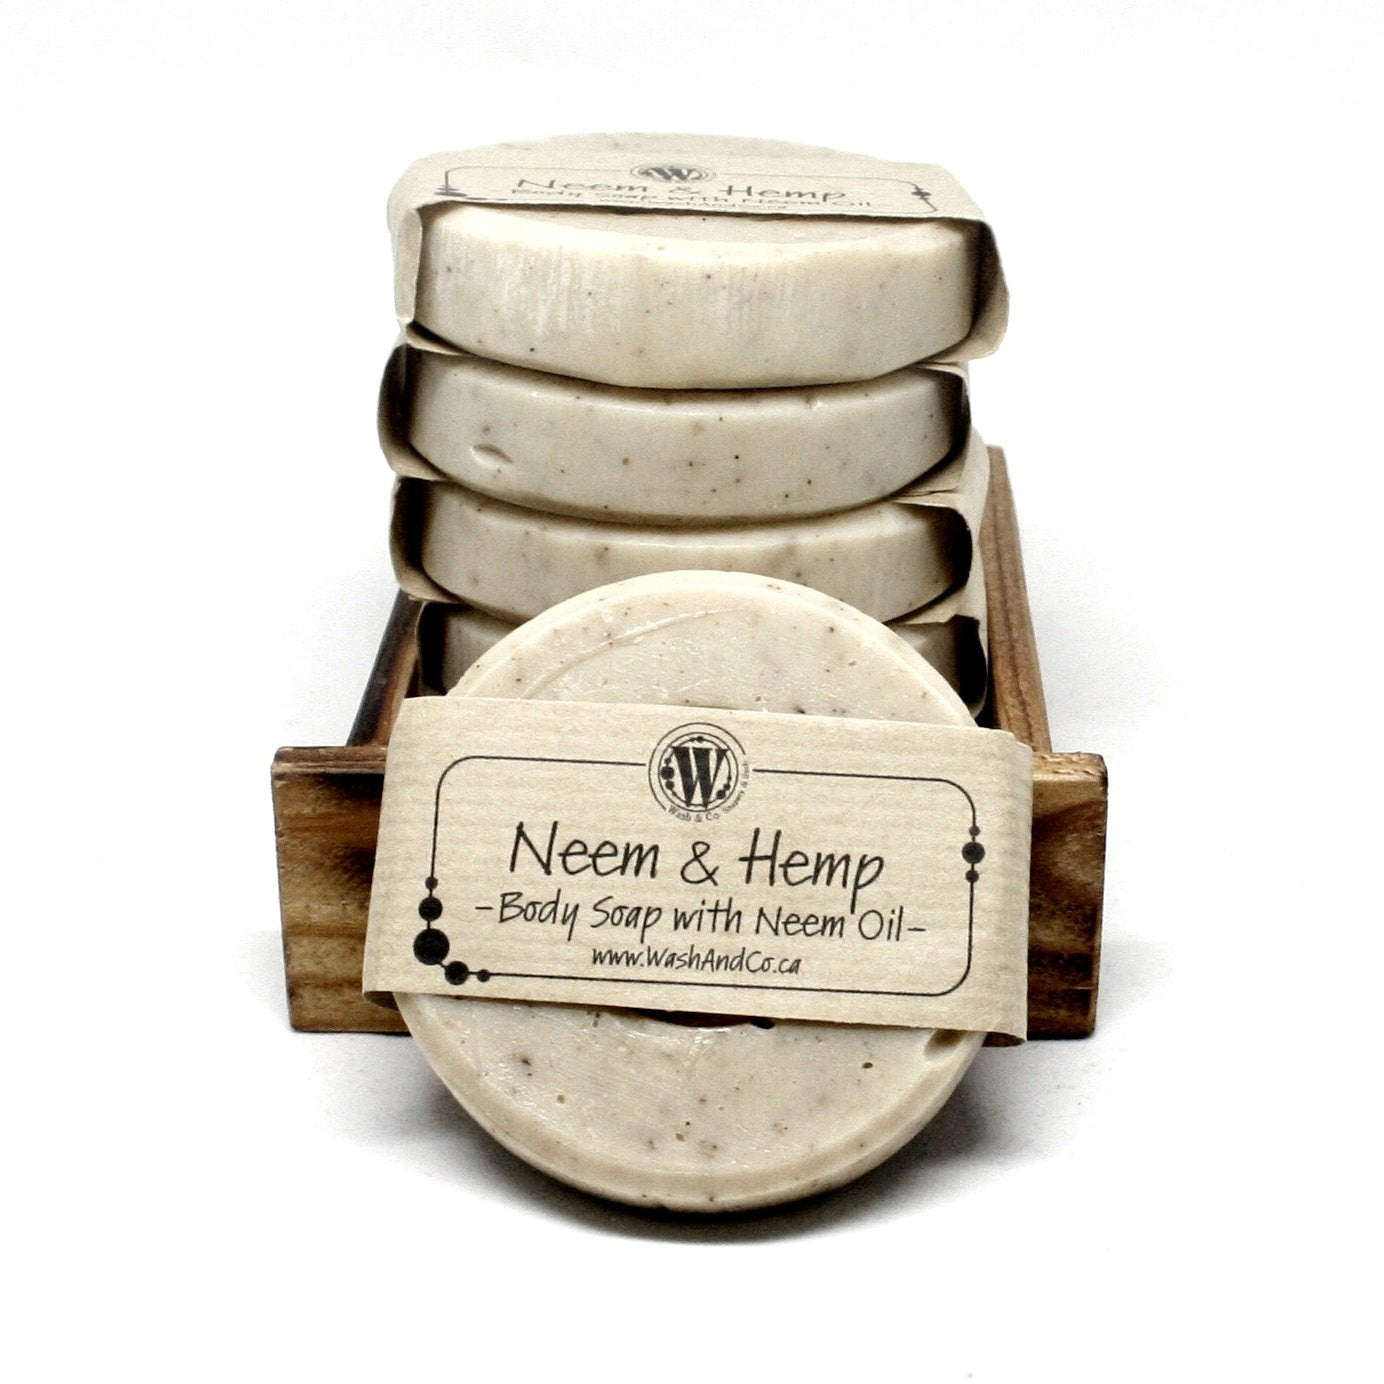 Neem & Hemp Bundle